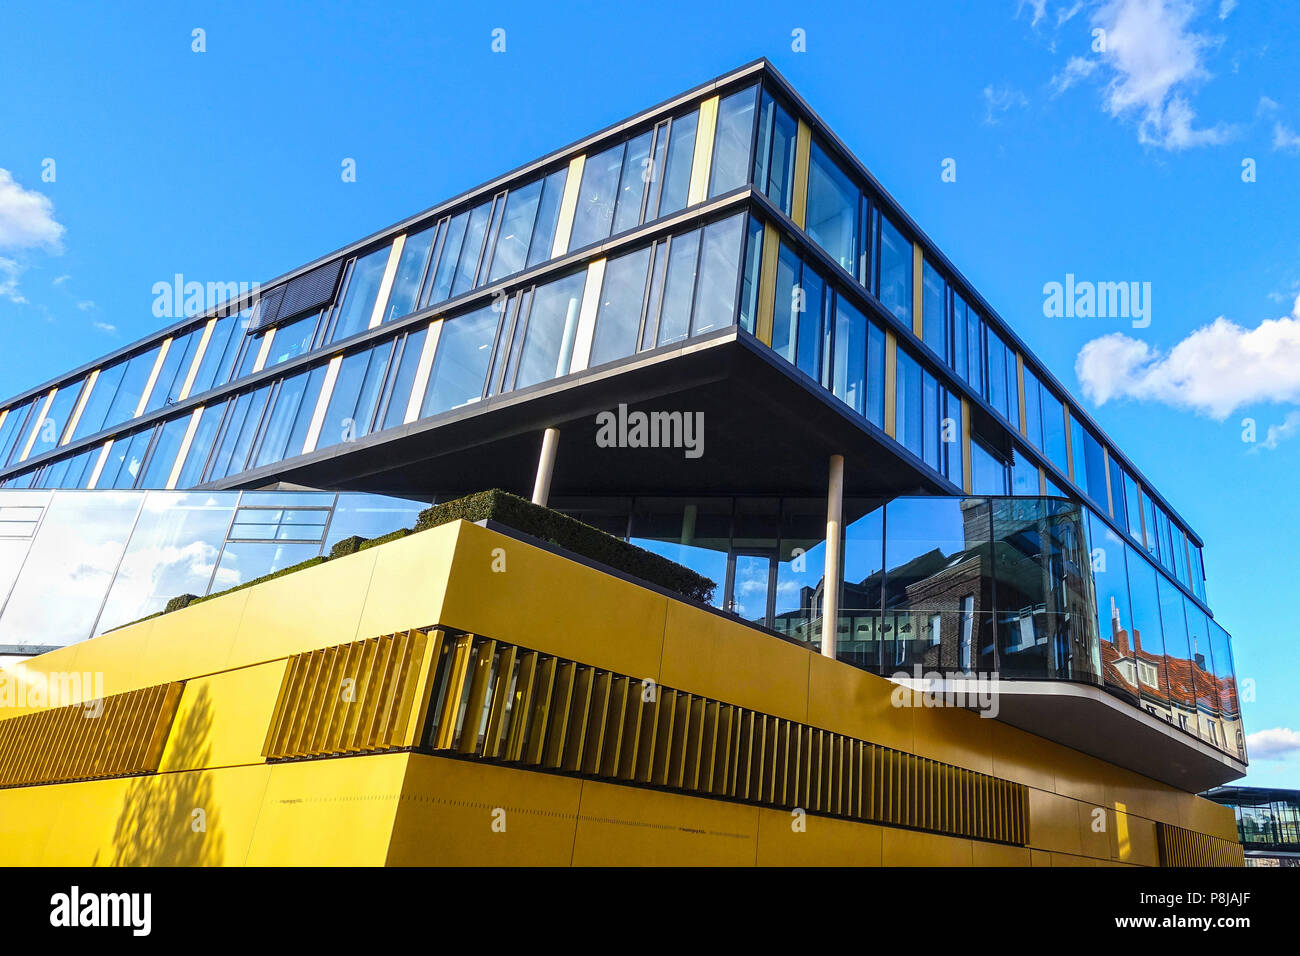 AACHEN, GERMANY - MARCH 29, 2018: Street view of the modern office building of the headquarter of the AachenMünchener insurance company, Aachen. - Stock Image